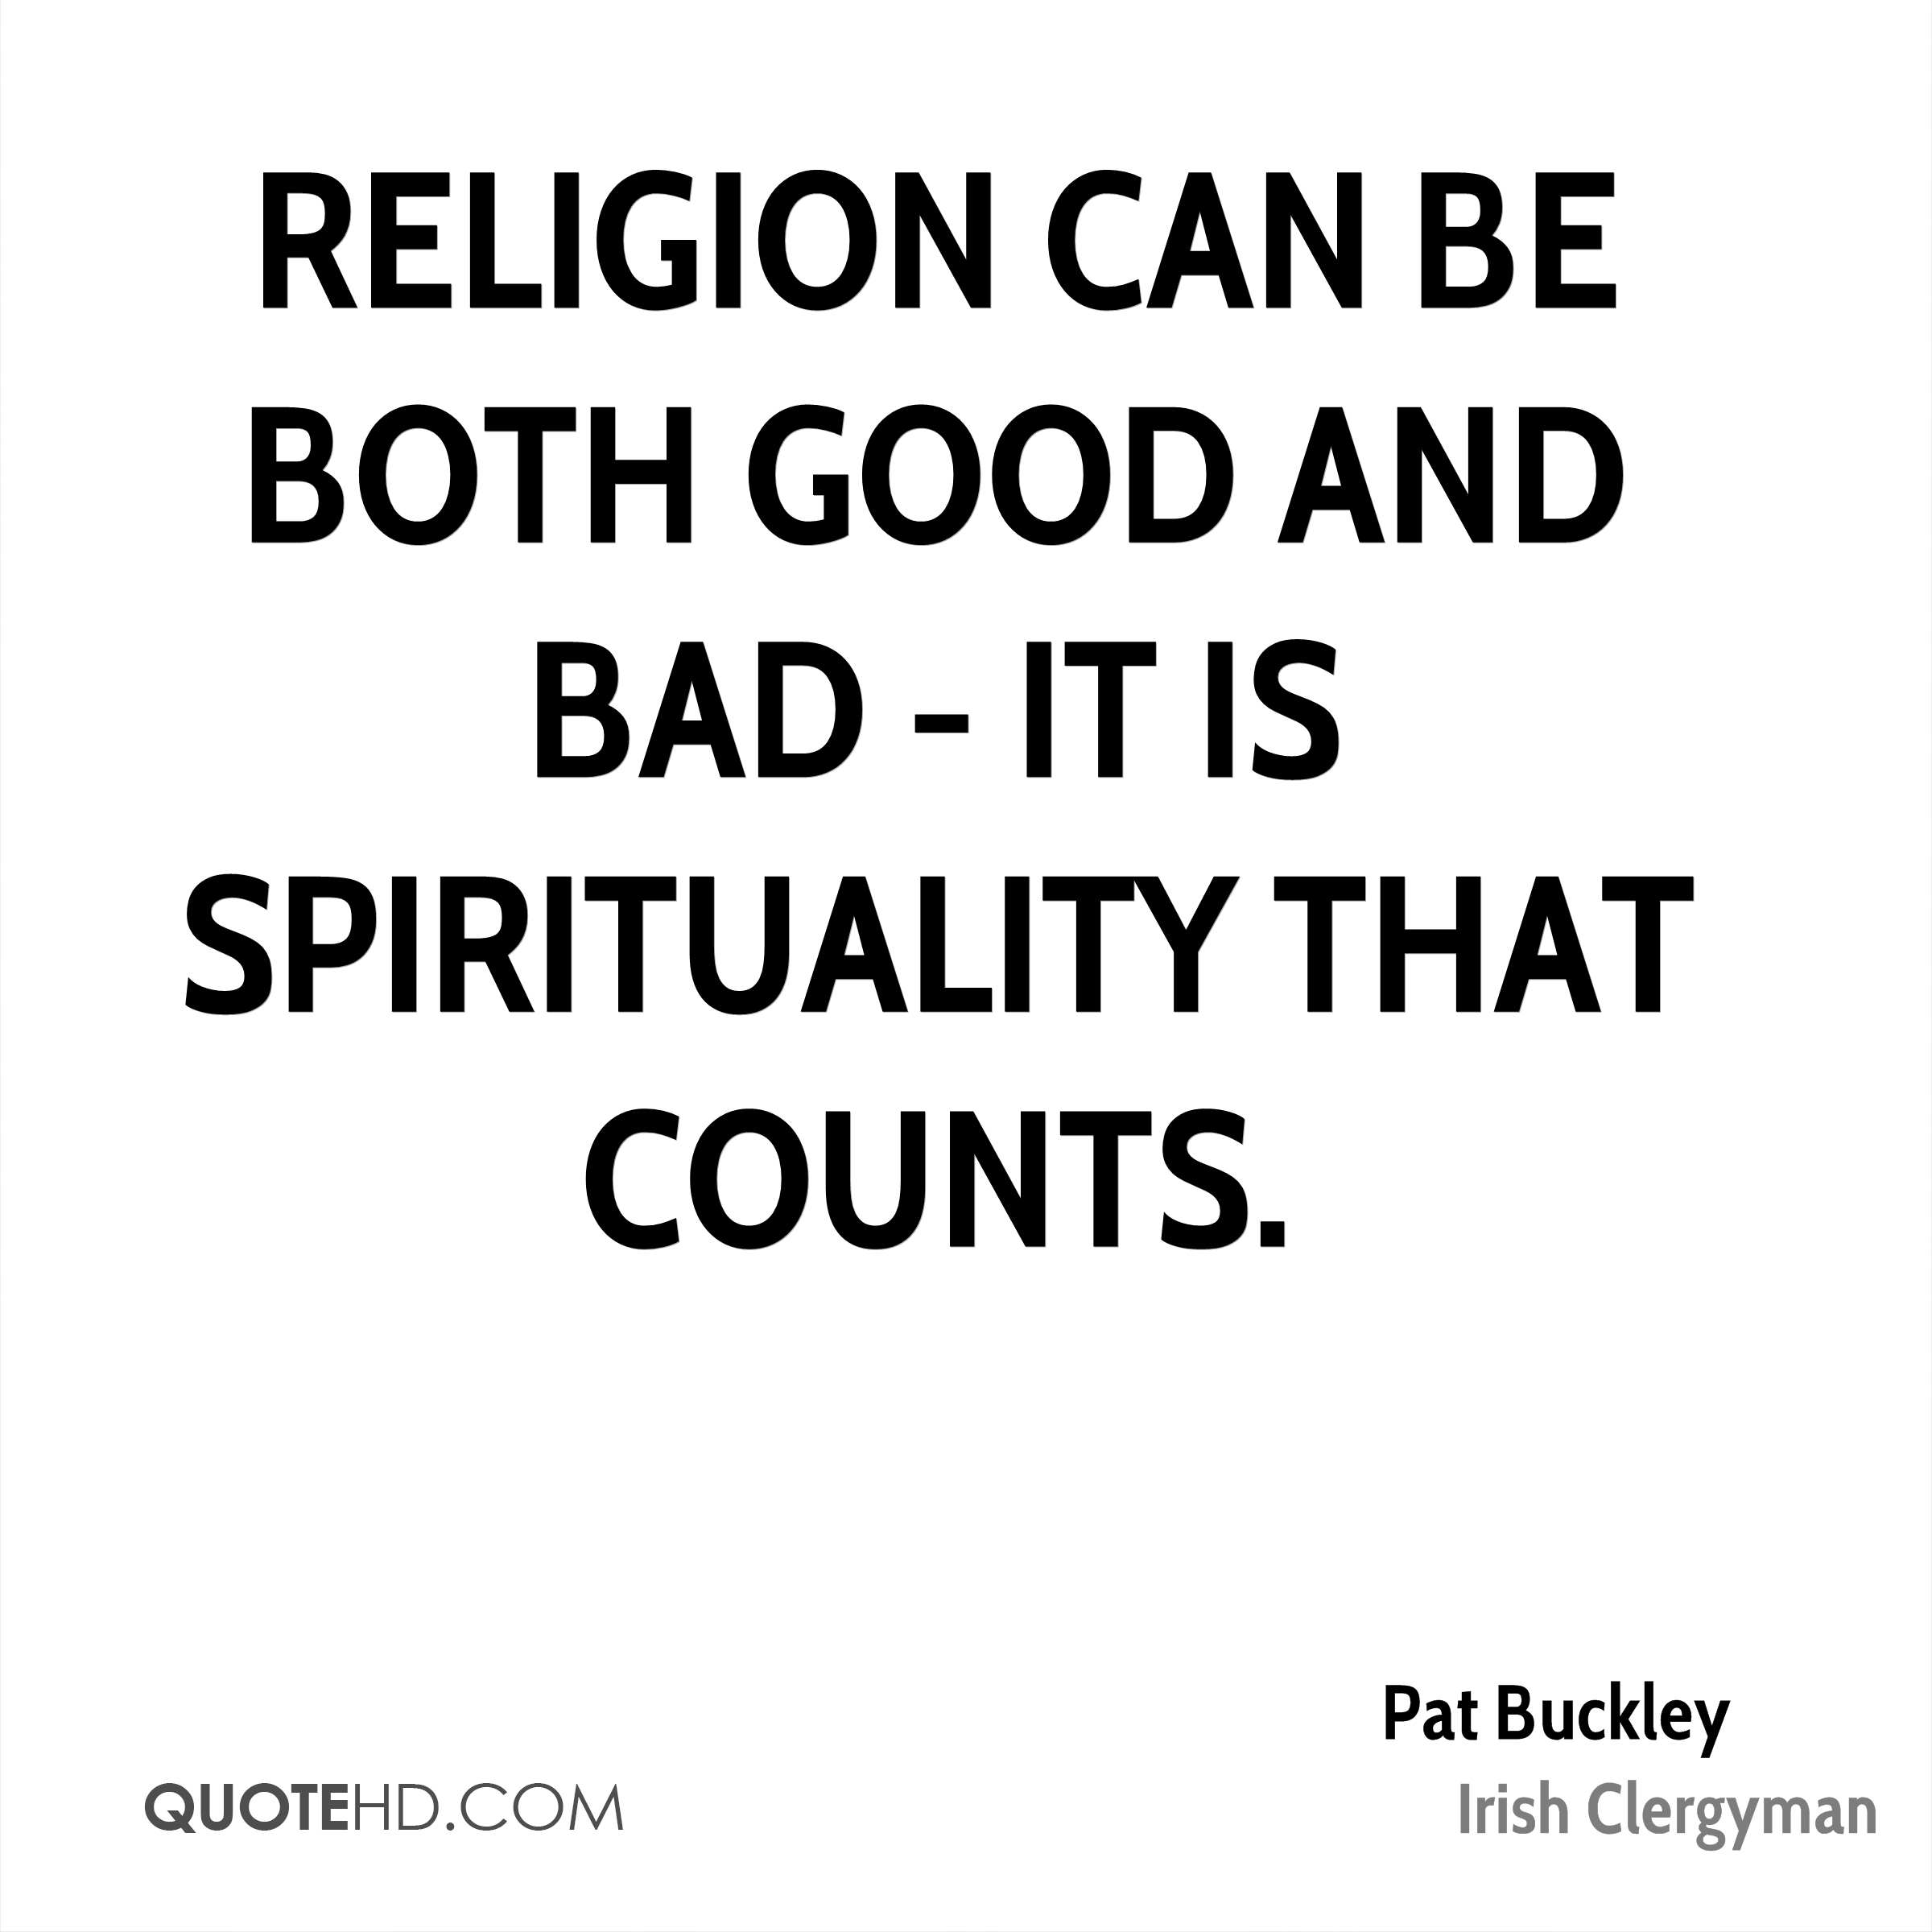 Religion can be both good and bad - it is spirituality that counts.